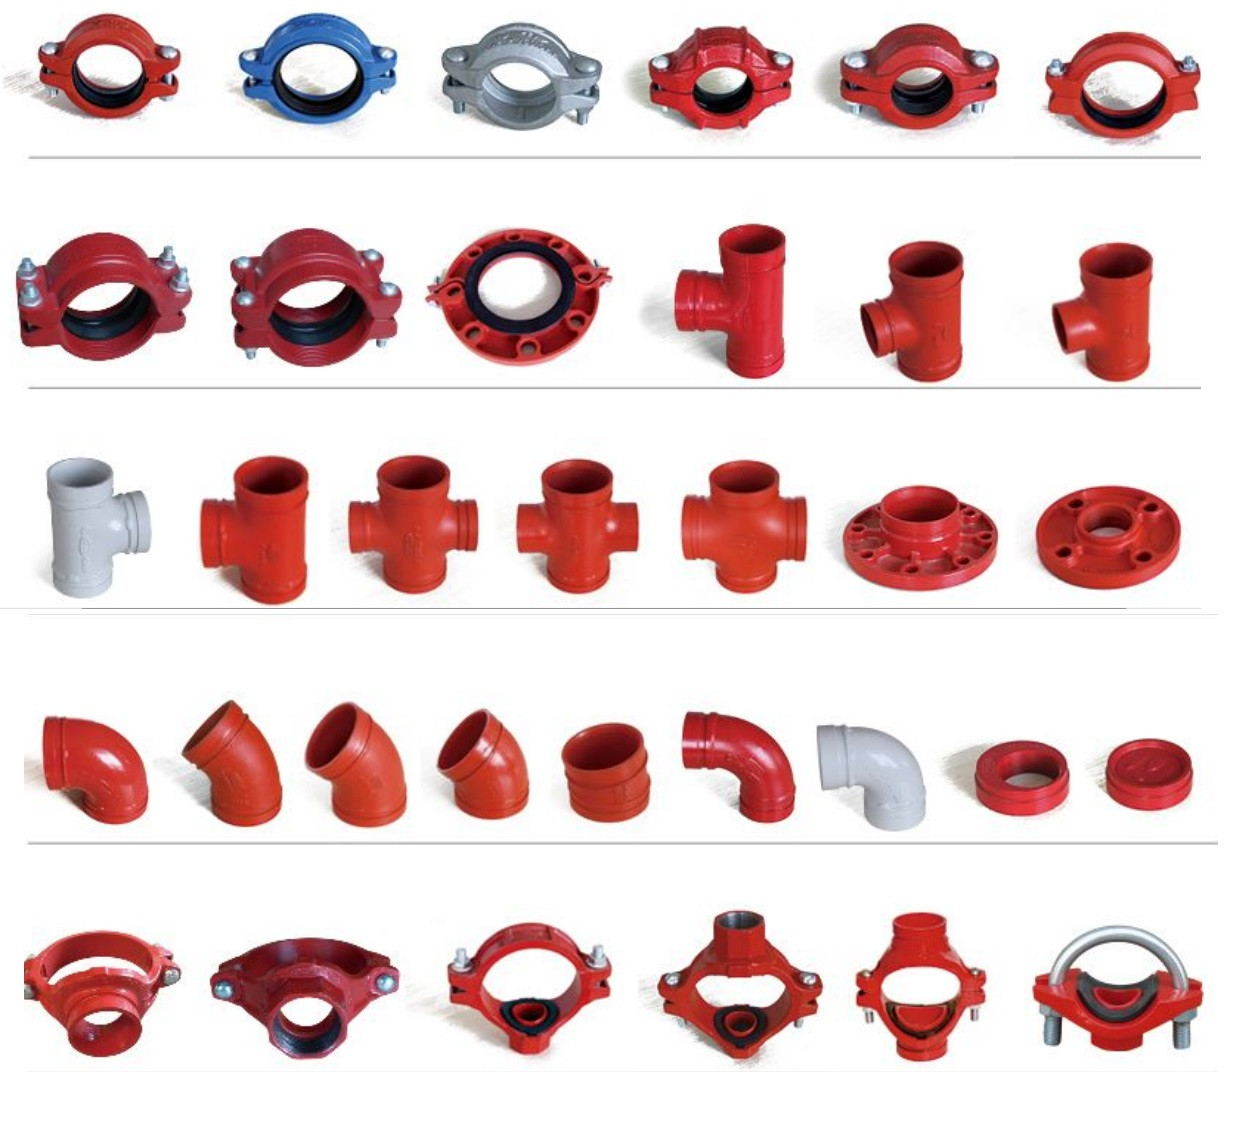 grooved couplings & fittings